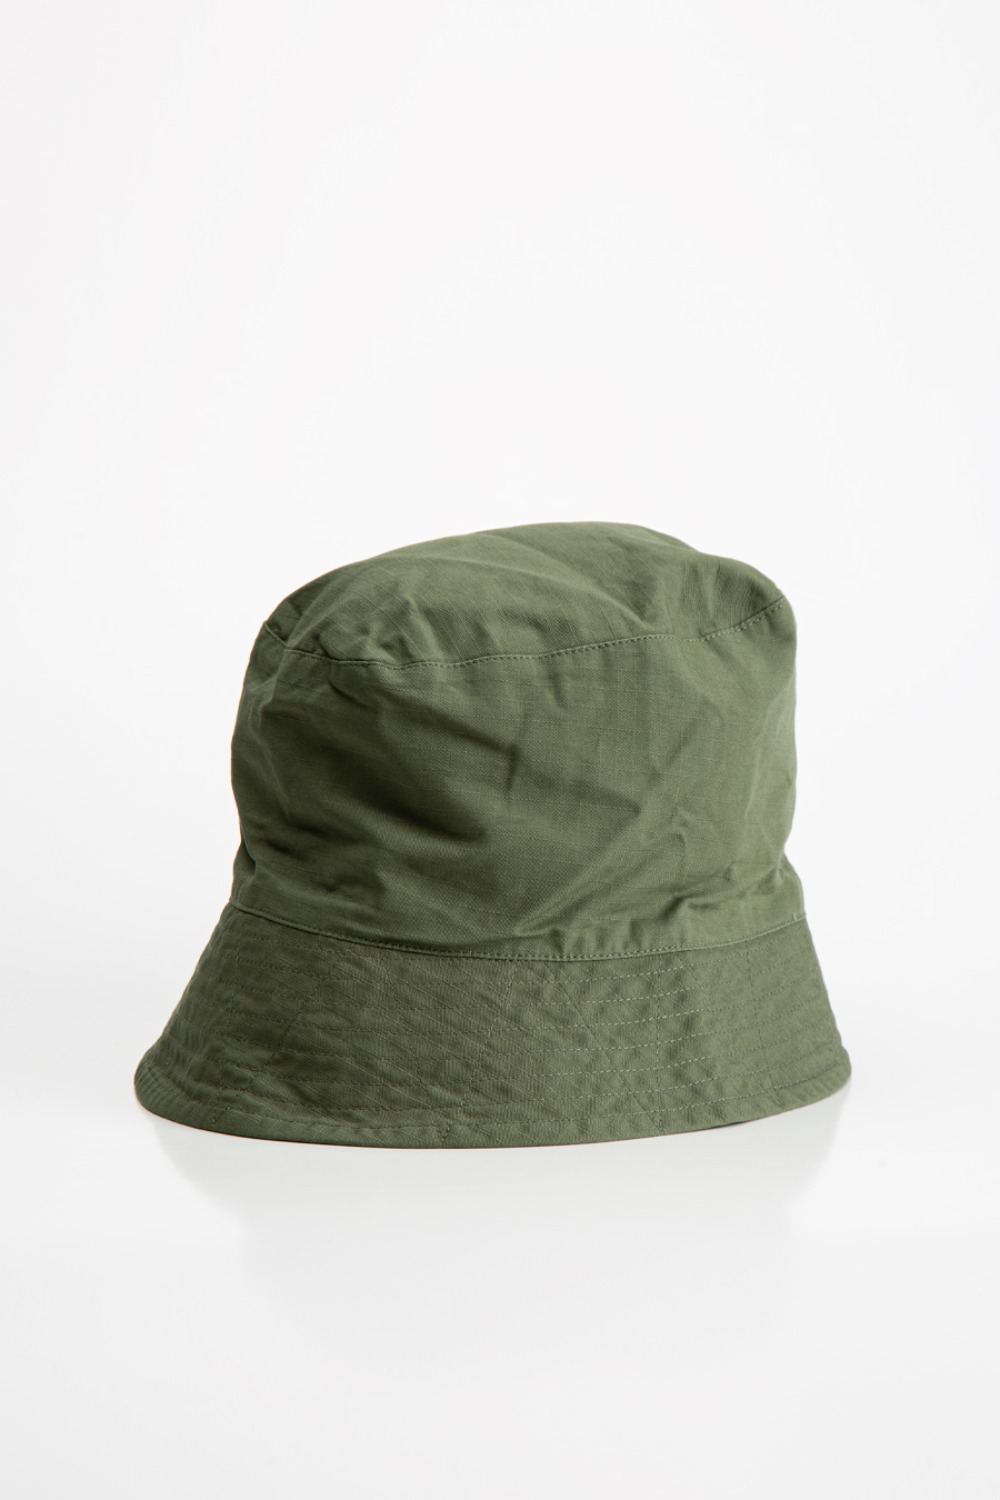 BUCKET HAT OLIVE COTTON RIPSTOP